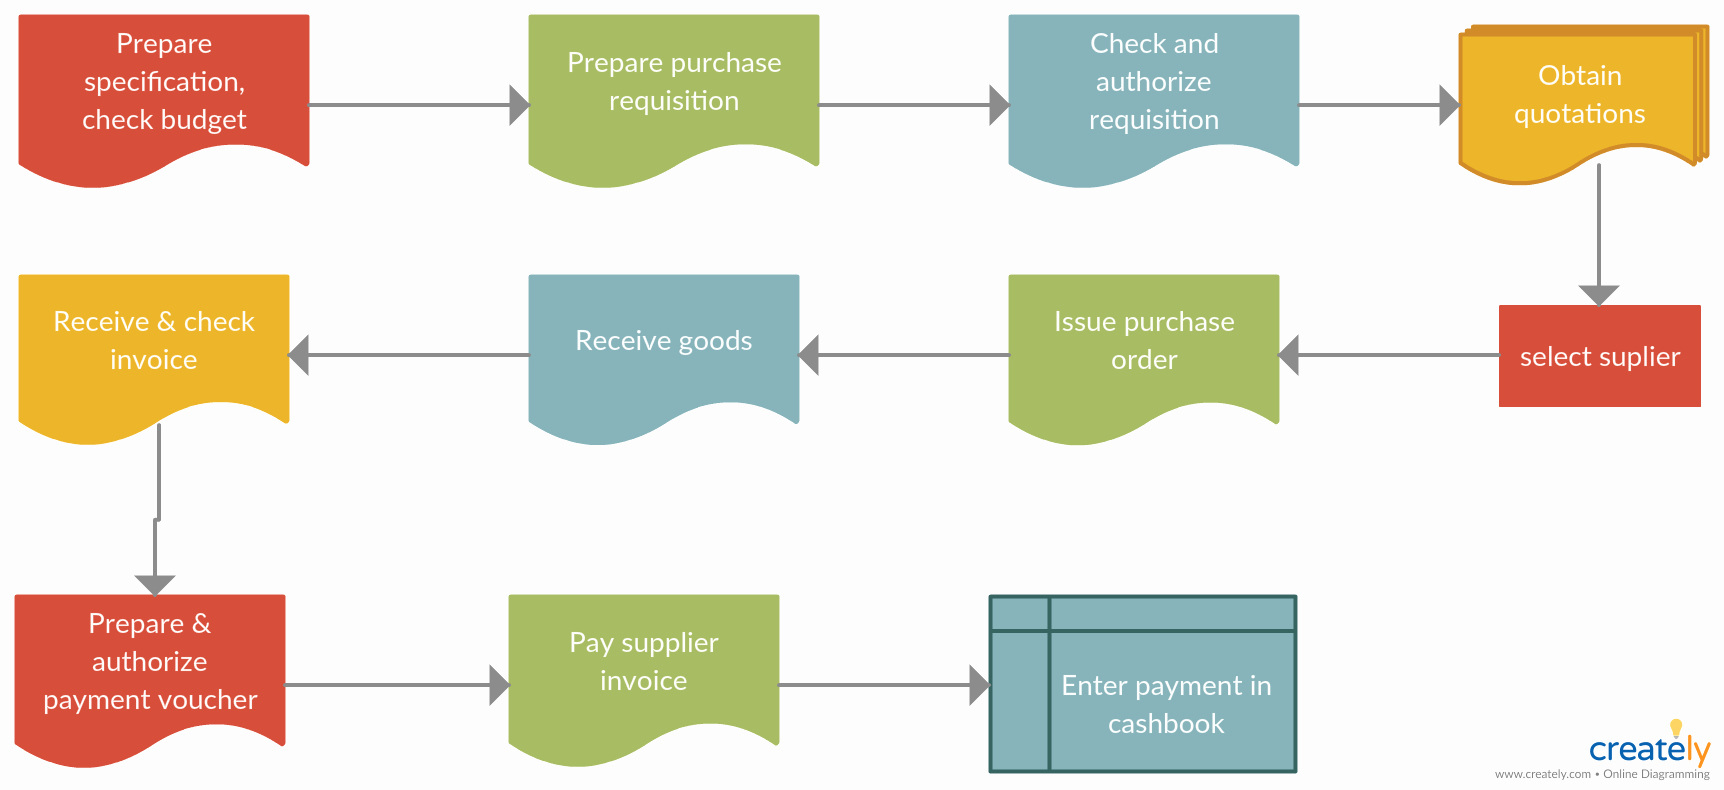 Procurement Process Flow Chart Elegant Procurement Process Flowchart You Can Edit This Template and Create Your Own Diagram Creately